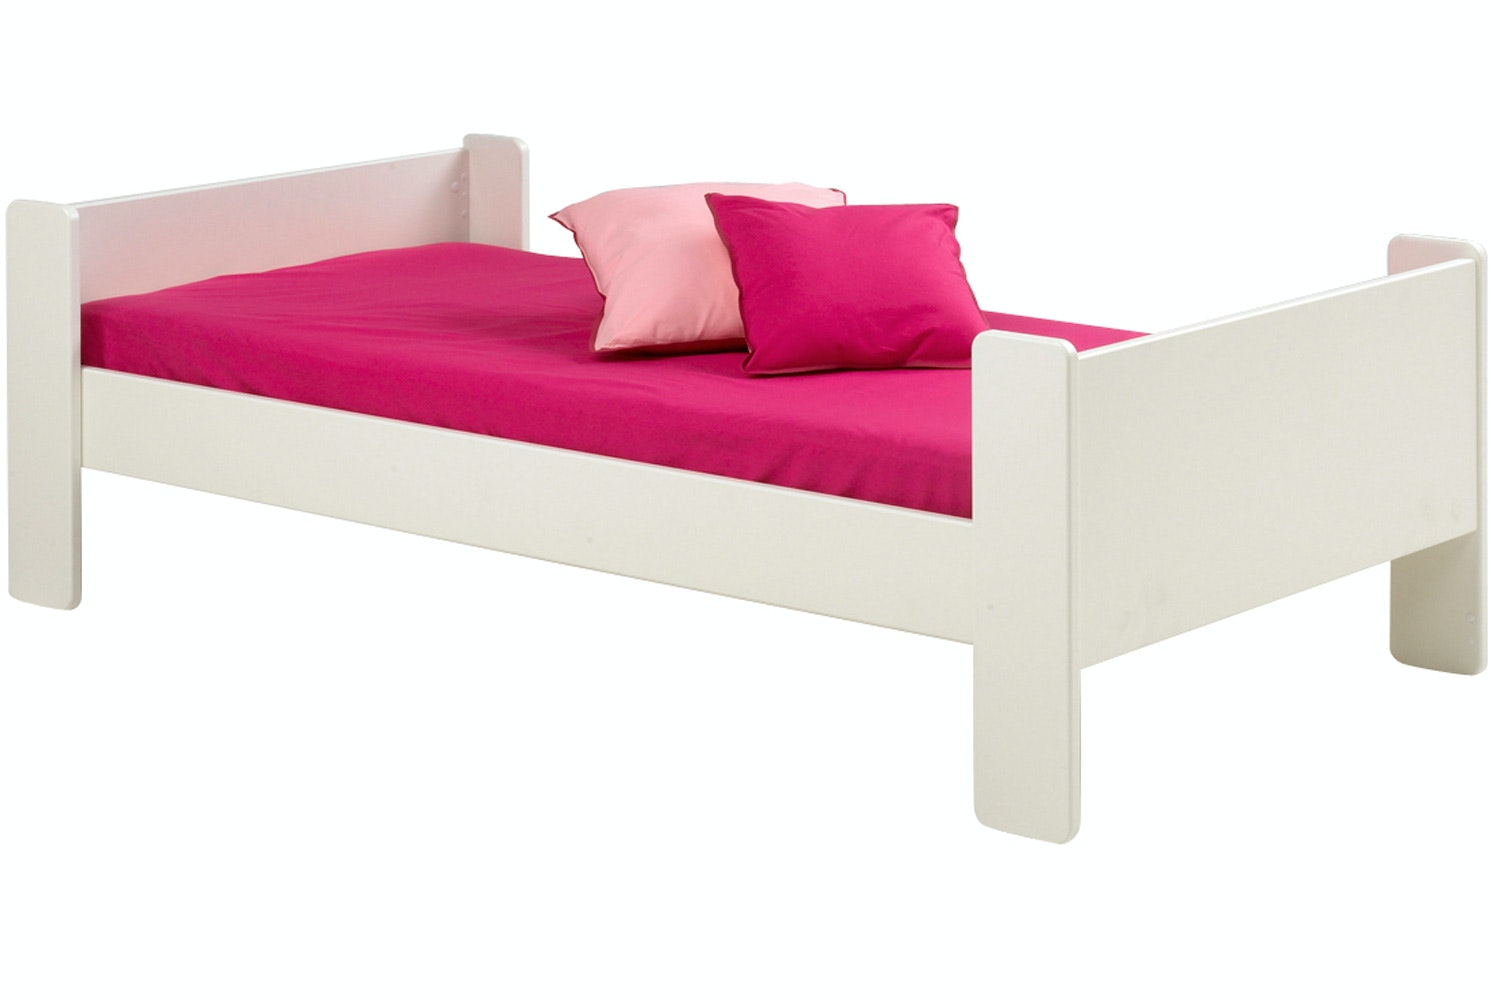 Popsicle Single Bed Frame White